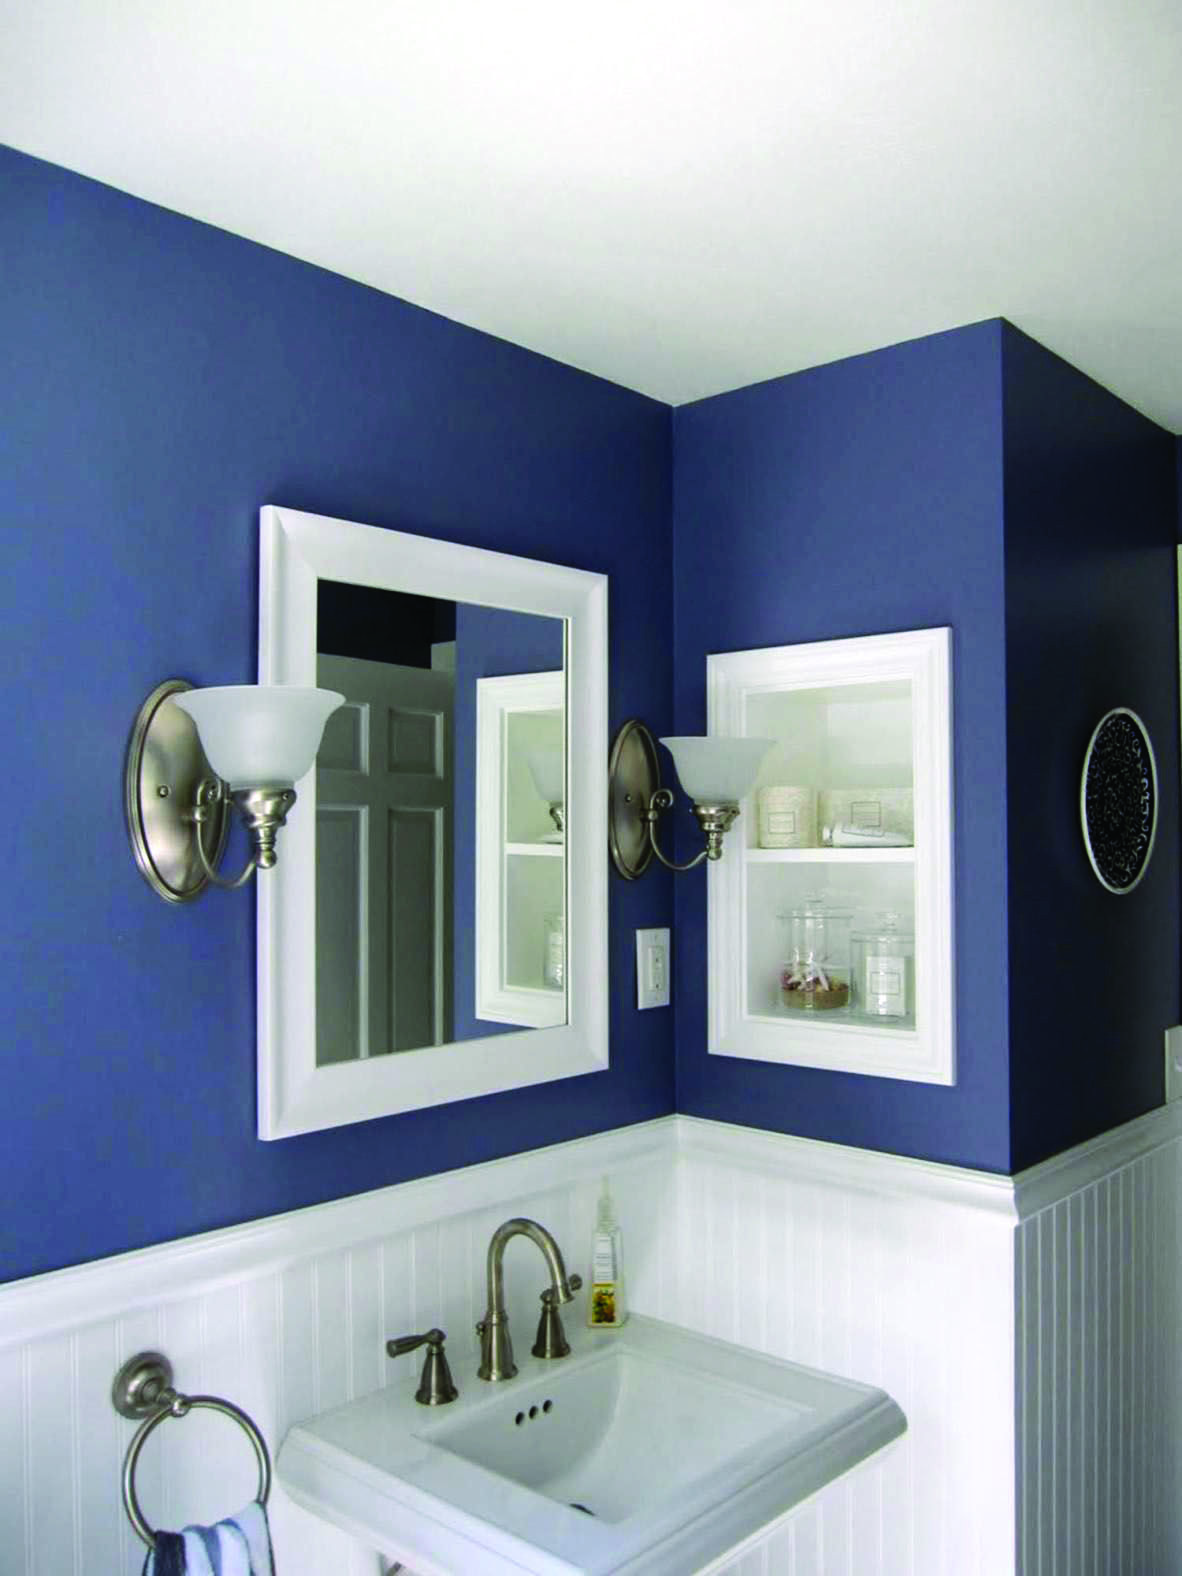 10 Paint Color Ideas For Small Bathrooms Homes Tre Small Bathroom Colors Small Bathroom Paint Half Bath Remodel